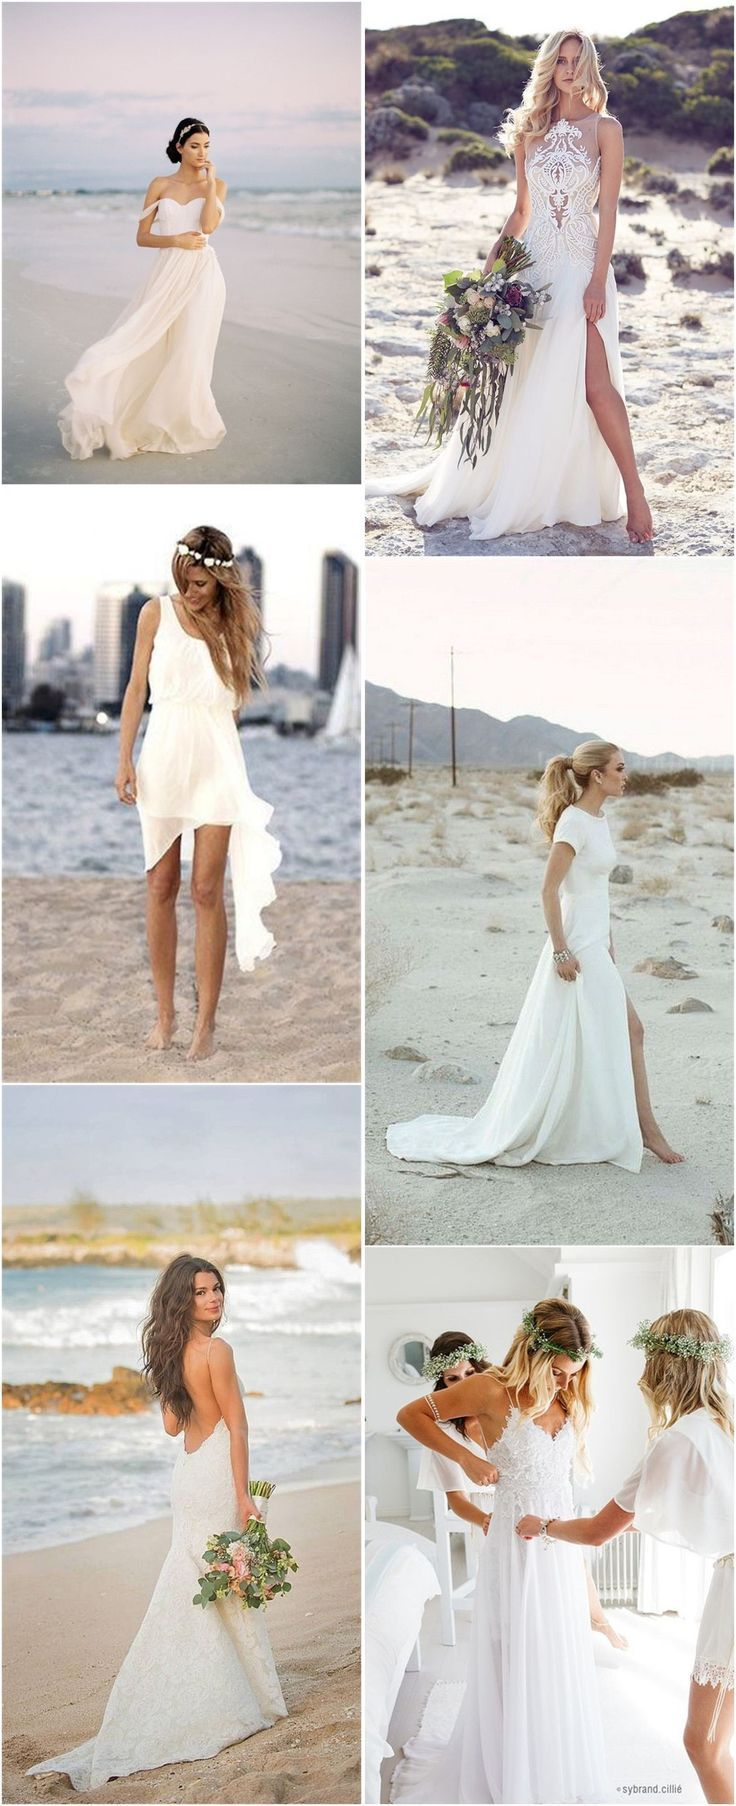 Top beach wedding dresses ideas to stand you out in